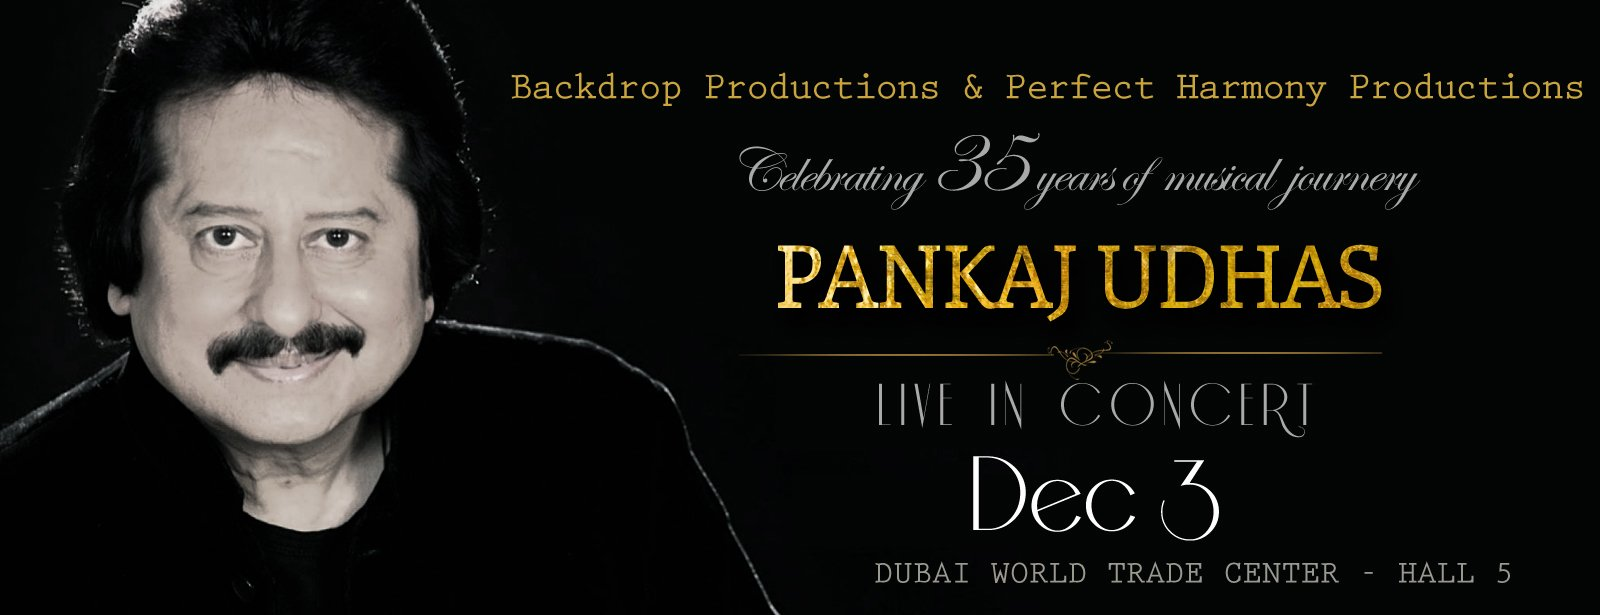 Pankaj Udhas Live in Concert, Dubai – Events in Dubai, UAE